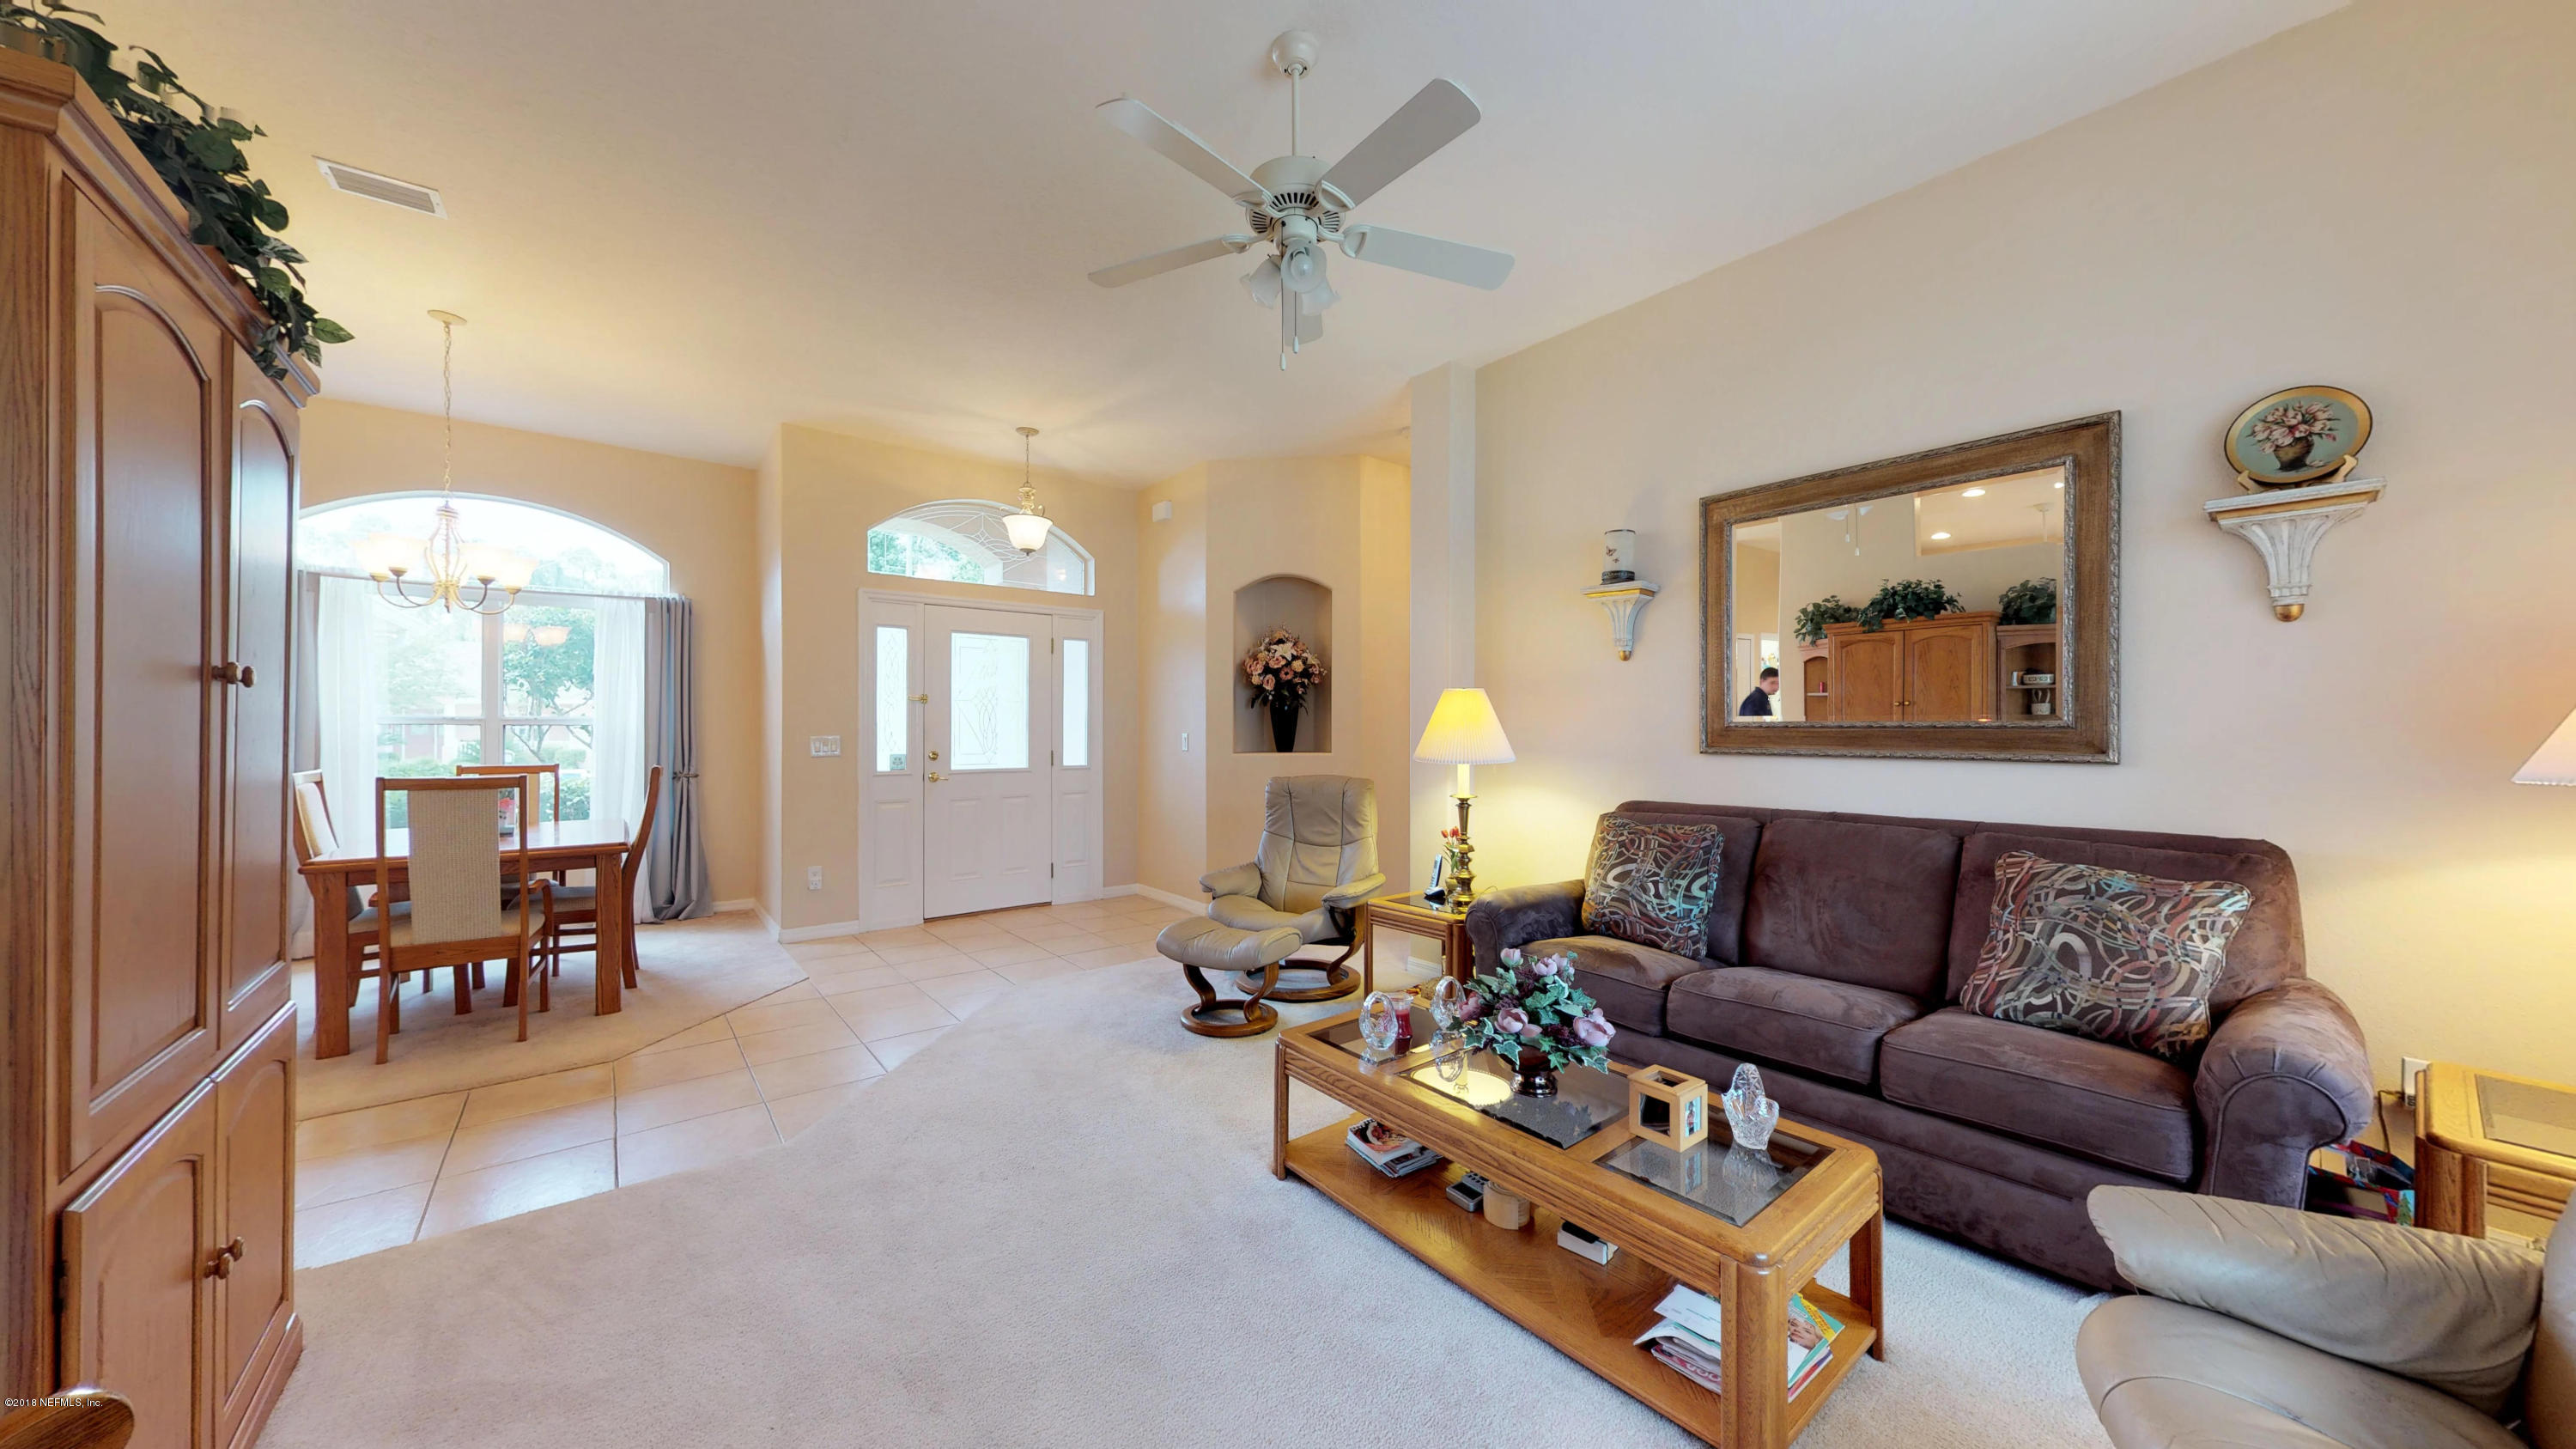 95 RENSHAW, PALM COAST, FLORIDA 32164, 3 Bedrooms Bedrooms, ,2 BathroomsBathrooms,Residential - single family,For sale,RENSHAW,940622